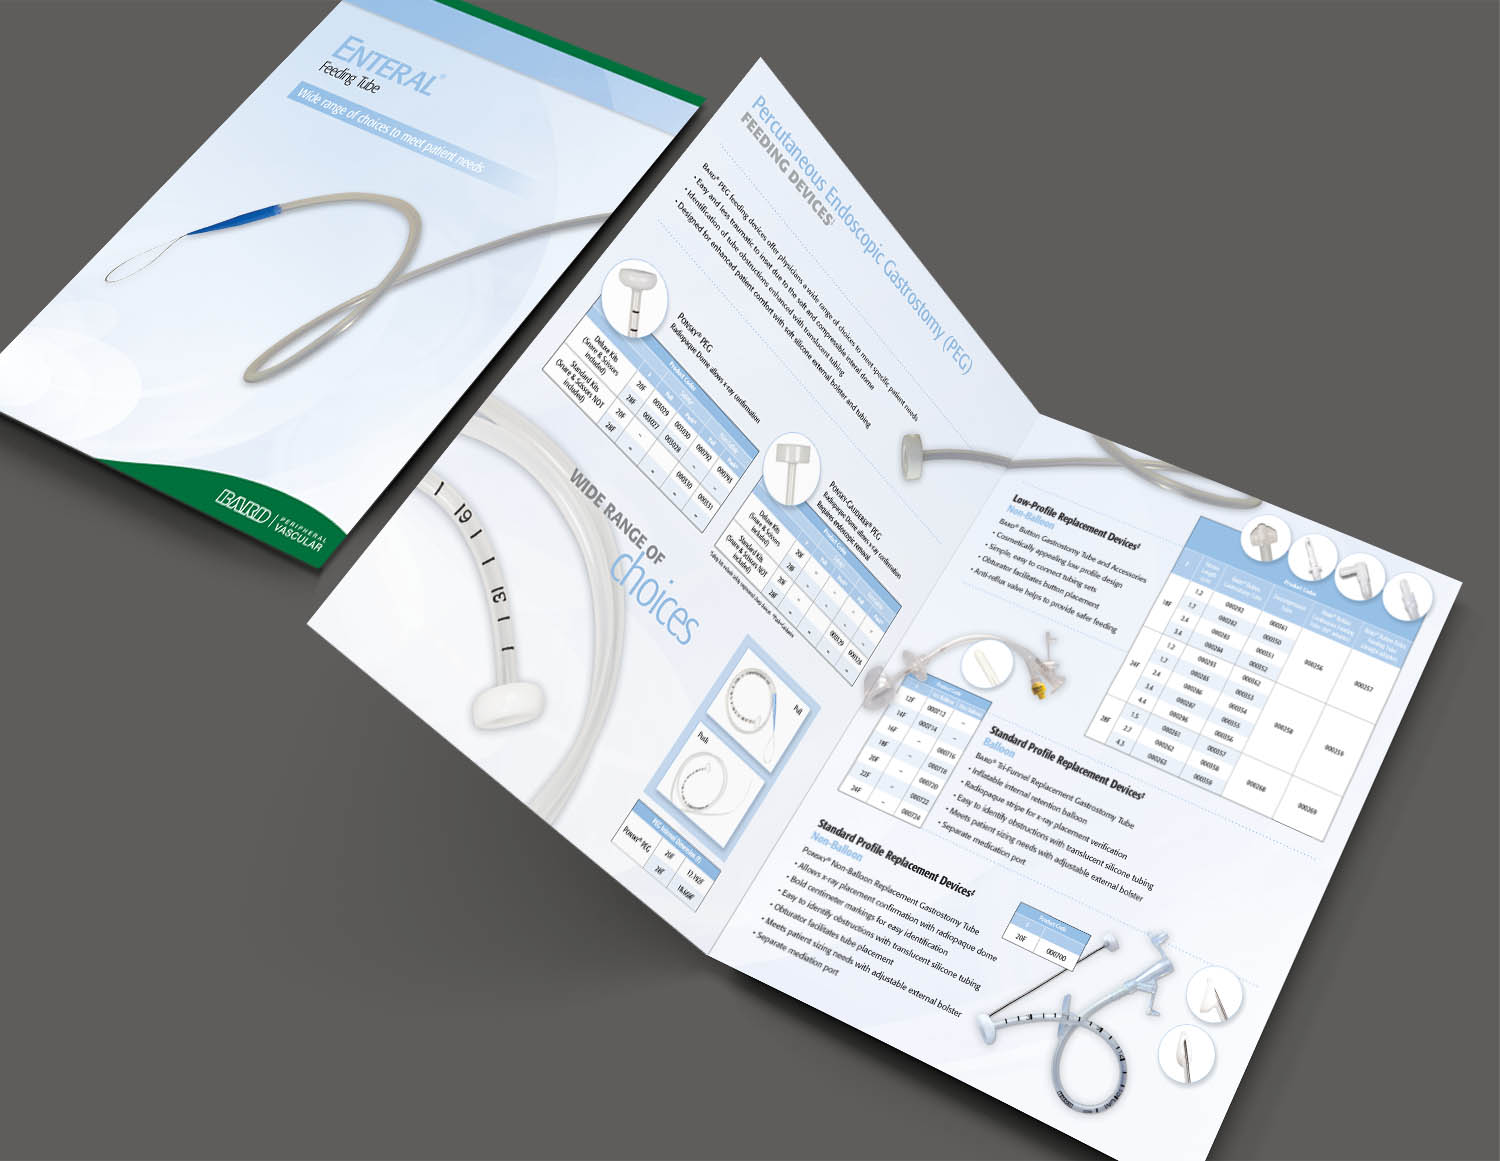 Bard Peripheral Vascular Enteral Feeding Tube Brochure